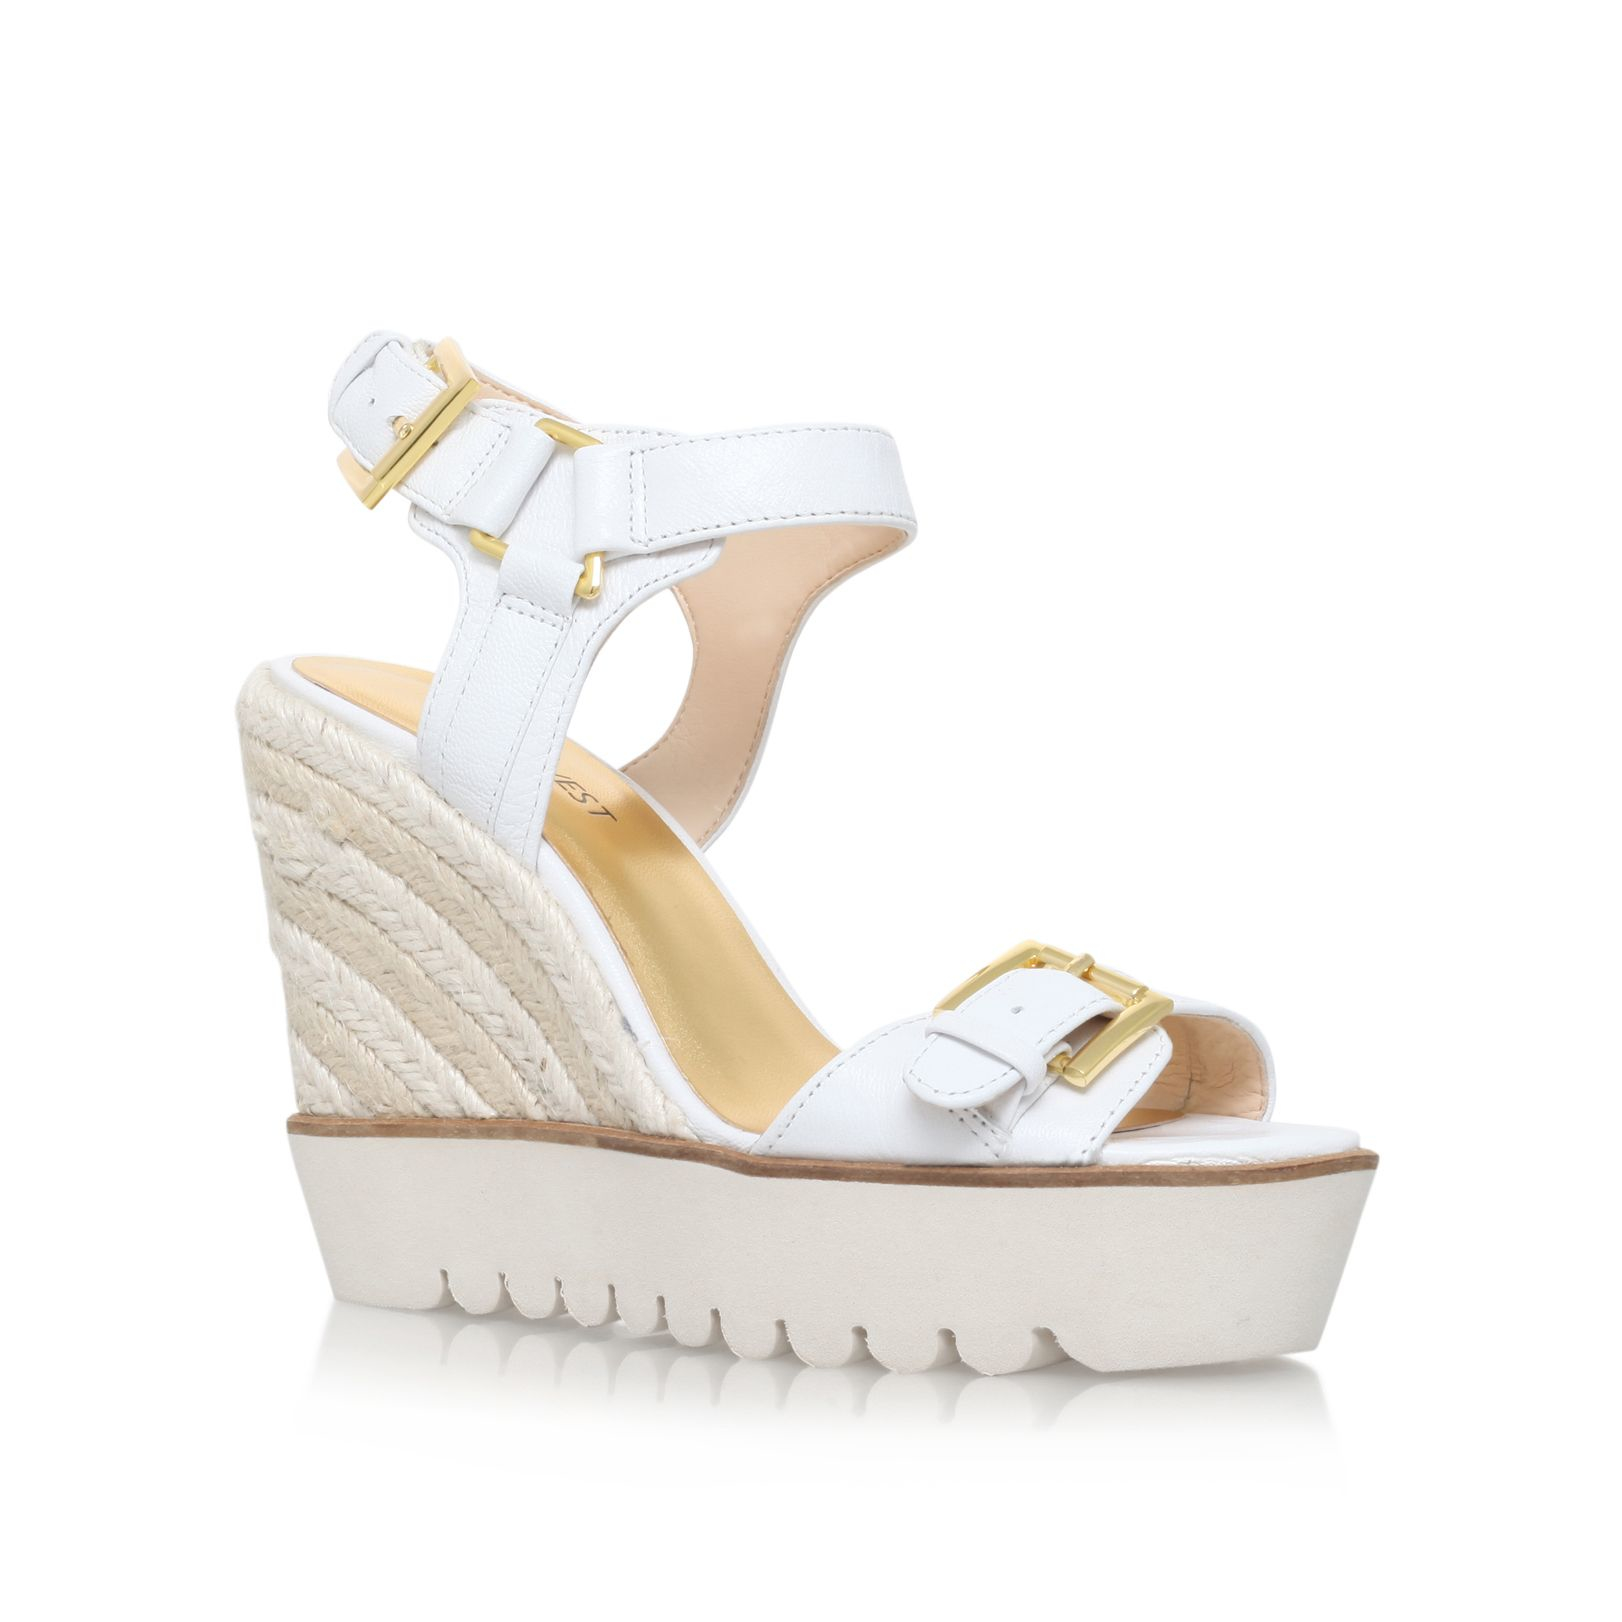 Kids' Wedge Shoes. Showing 48 of results that match your query. Search Product Result. Rachel Shoes Little Girls White Patent Wedge Bow Dress Shoes. Product Image. Price $ Girls Brown Toe Thong Wedge Sandals Malia Summer Shoes Heels Youth Size .